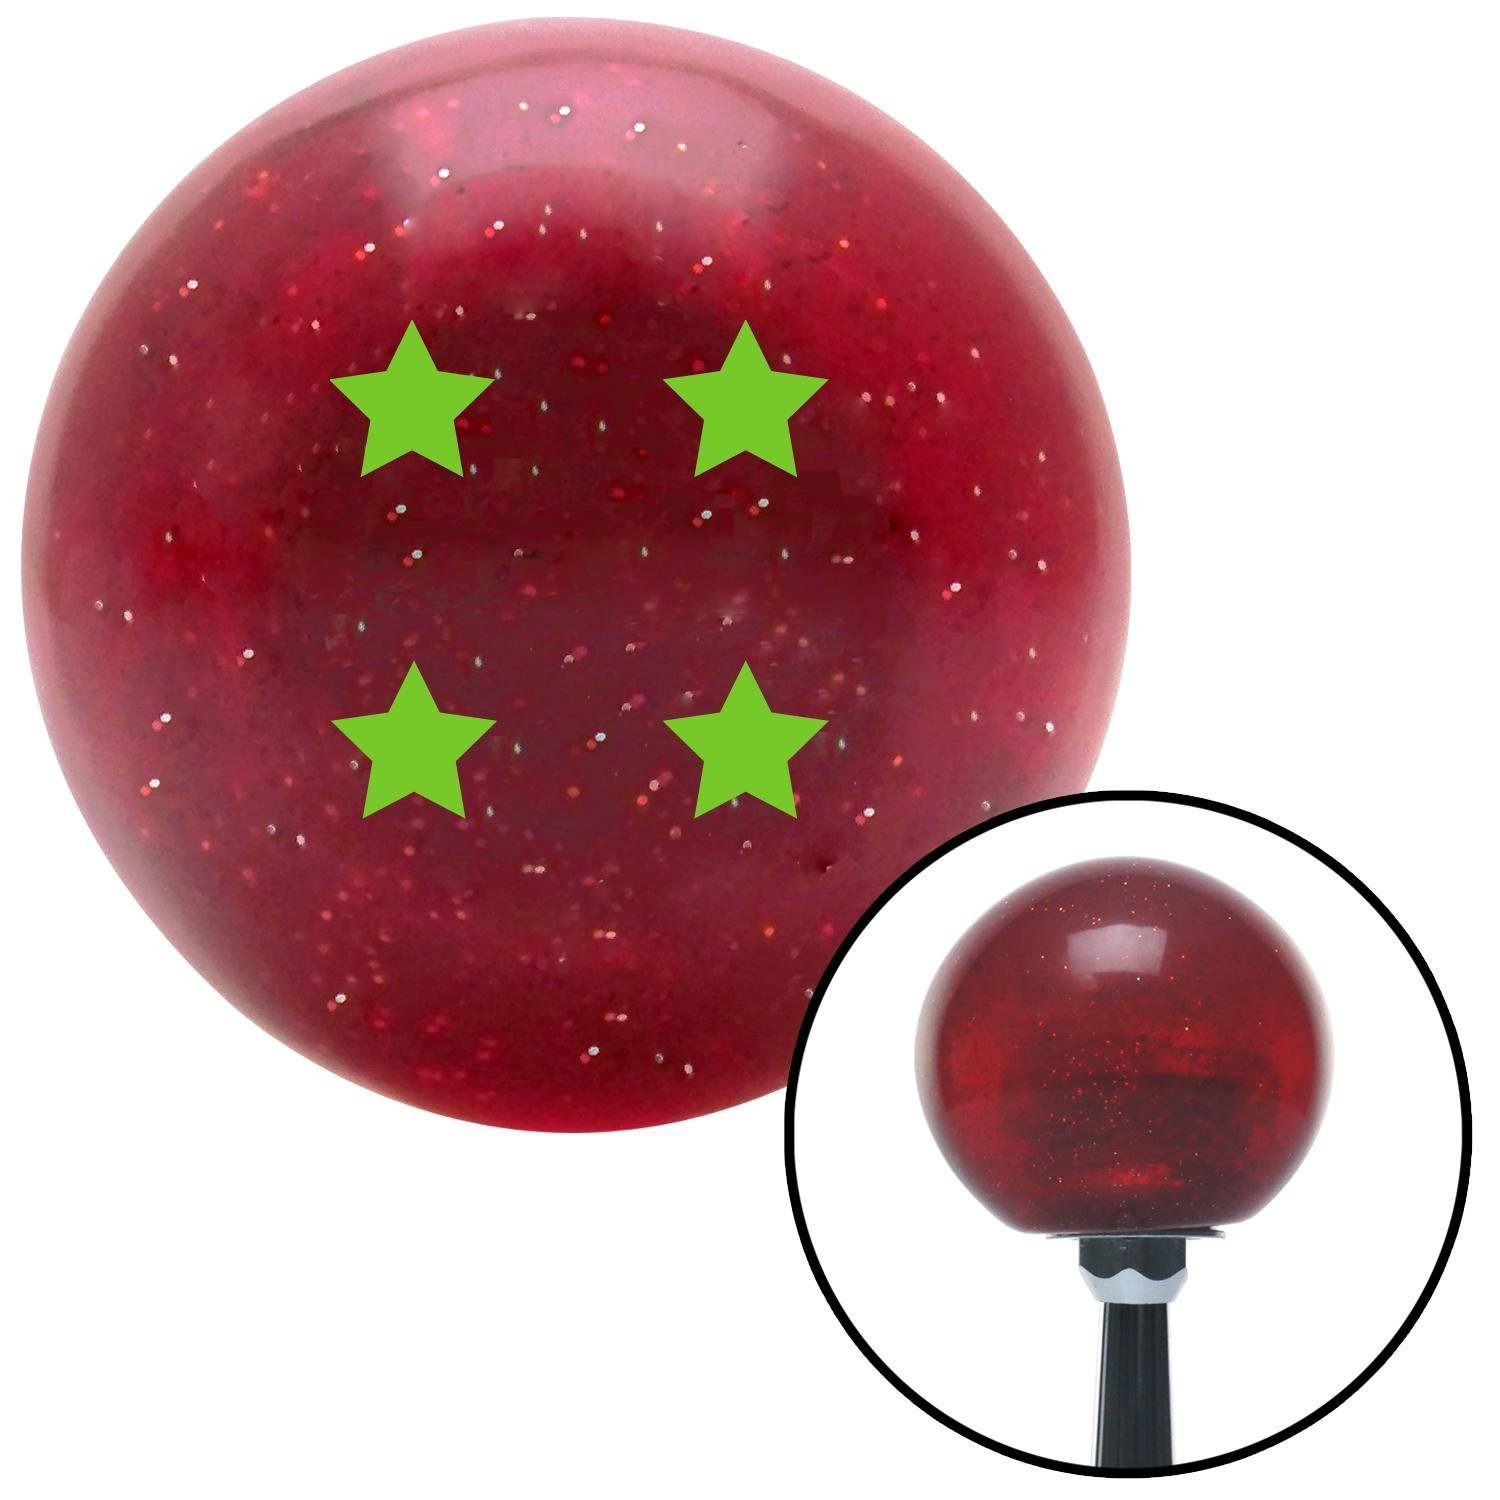 Green Dragon Ball Z - 4 Star American Shifter 141675 Red Metal Flake Shift Knob with M16 x 1.5 Insert